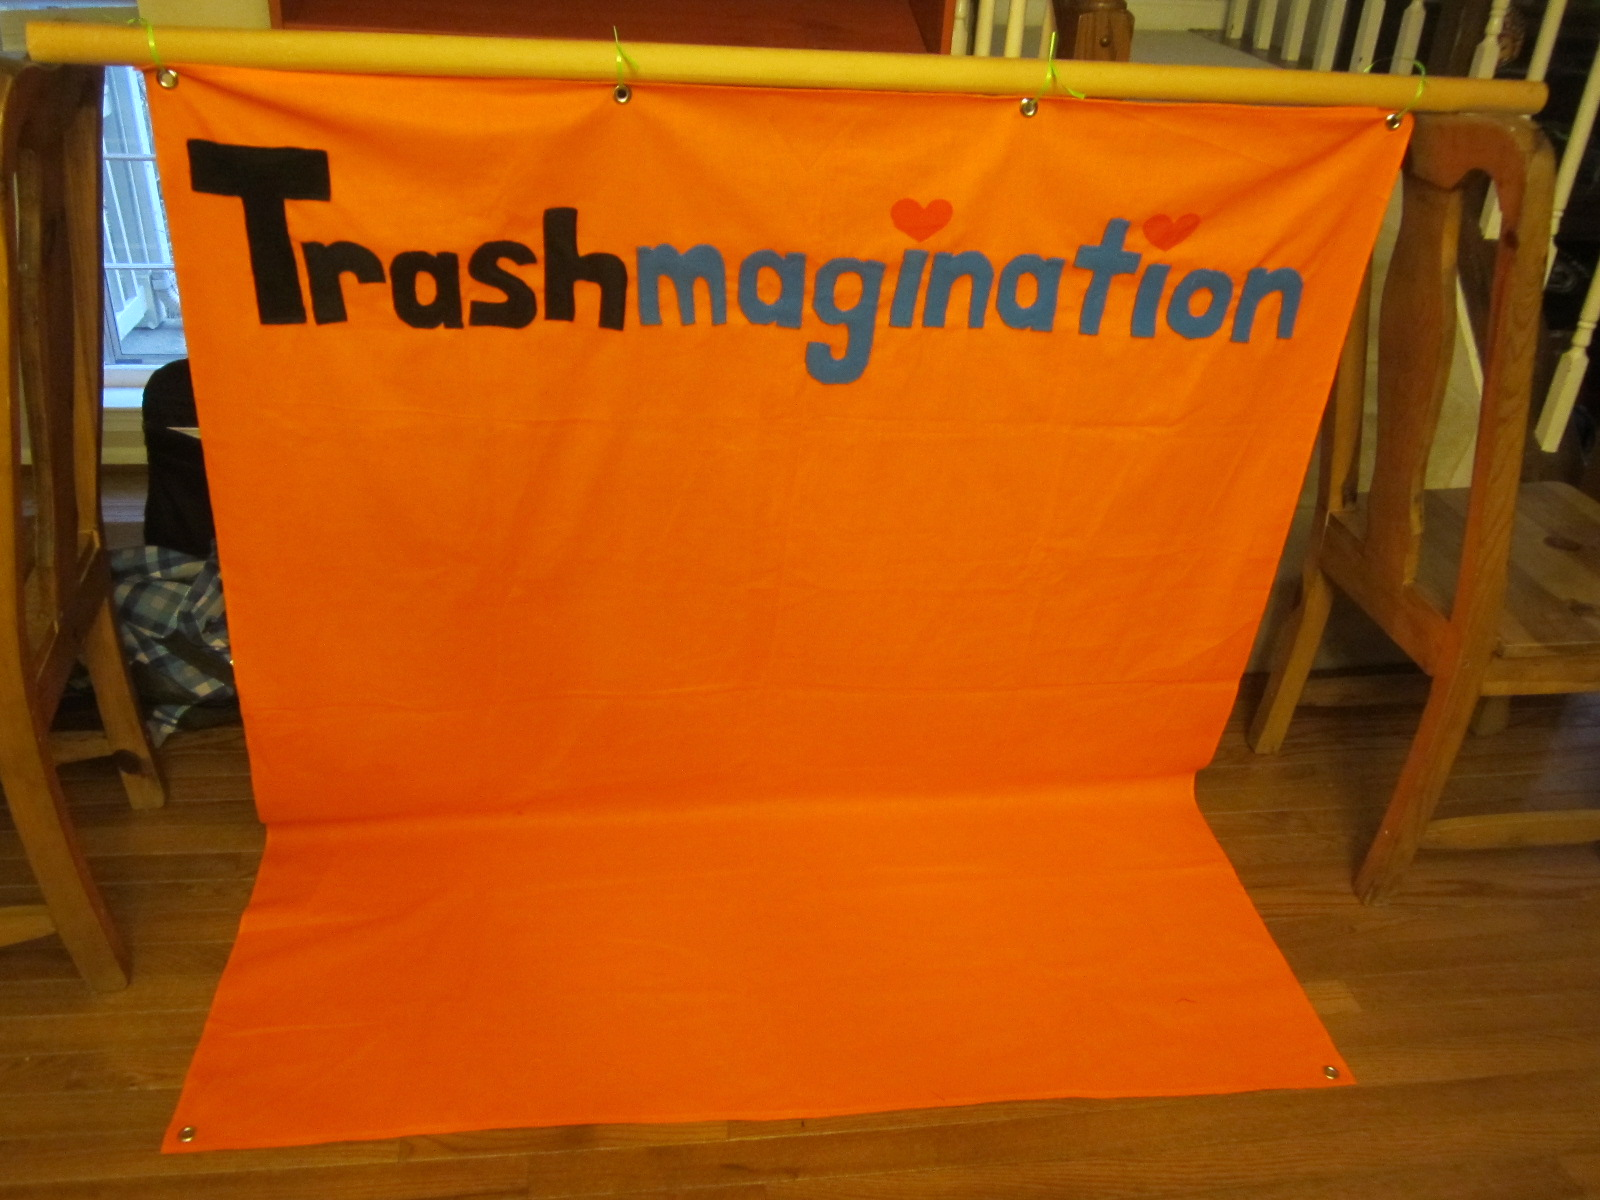 The Trashmagination Banner I sewed